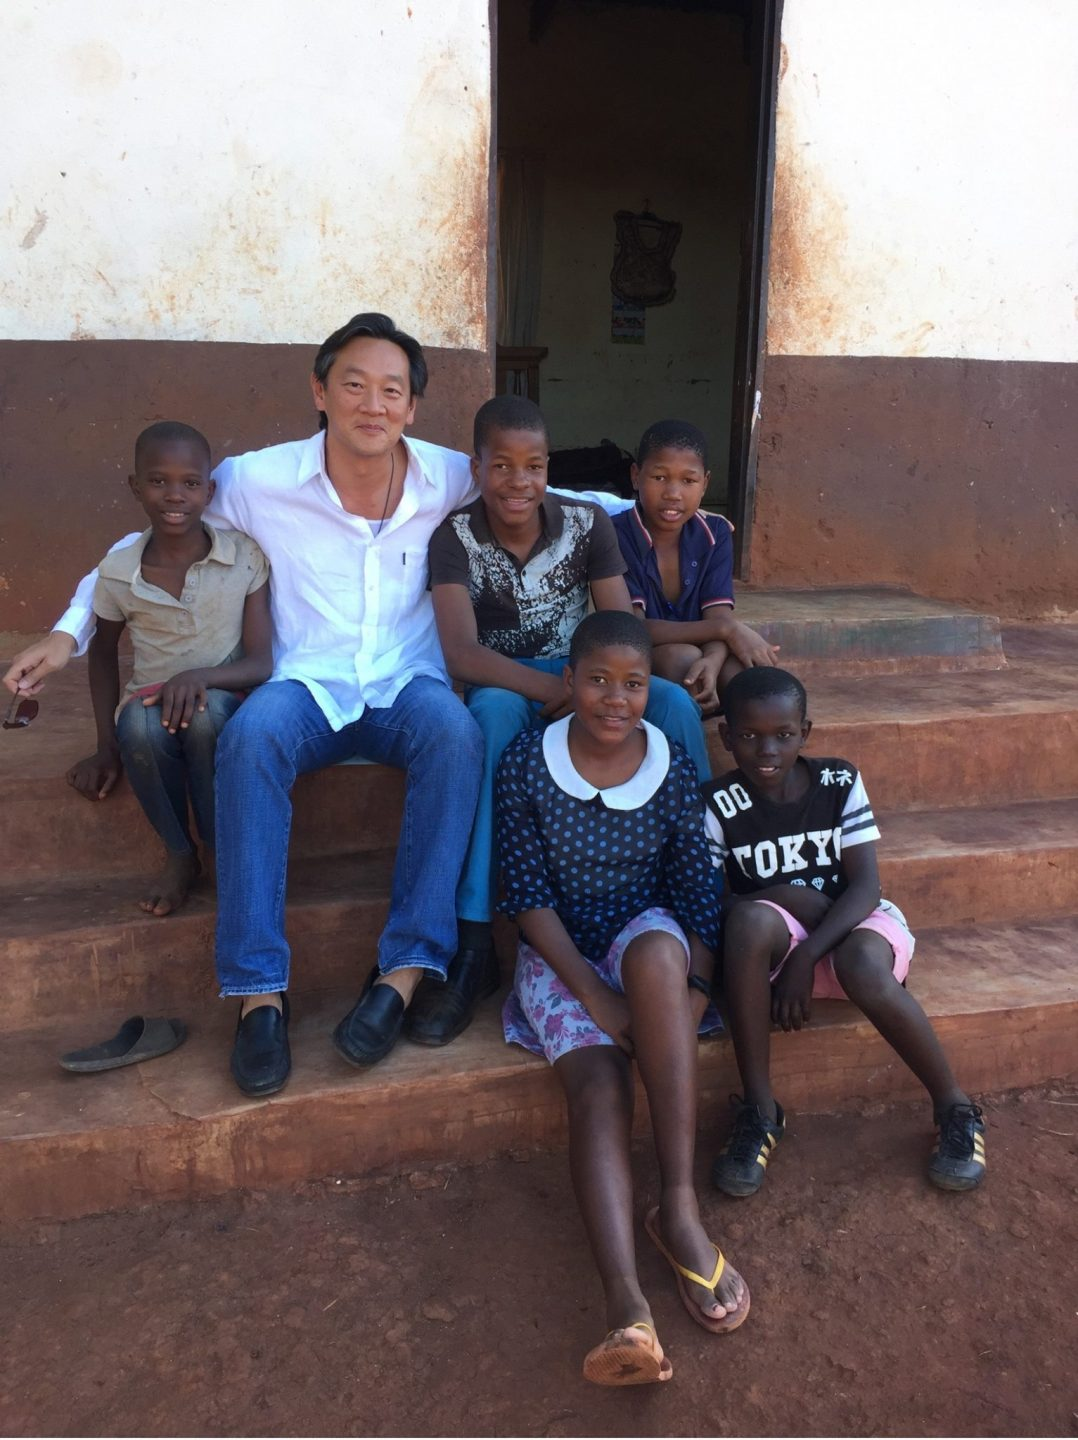 Timothy with the local children in Swaziland during one of the Desert Odyssey journeys. Photo taken from Desert Odyssey's Facebook page.